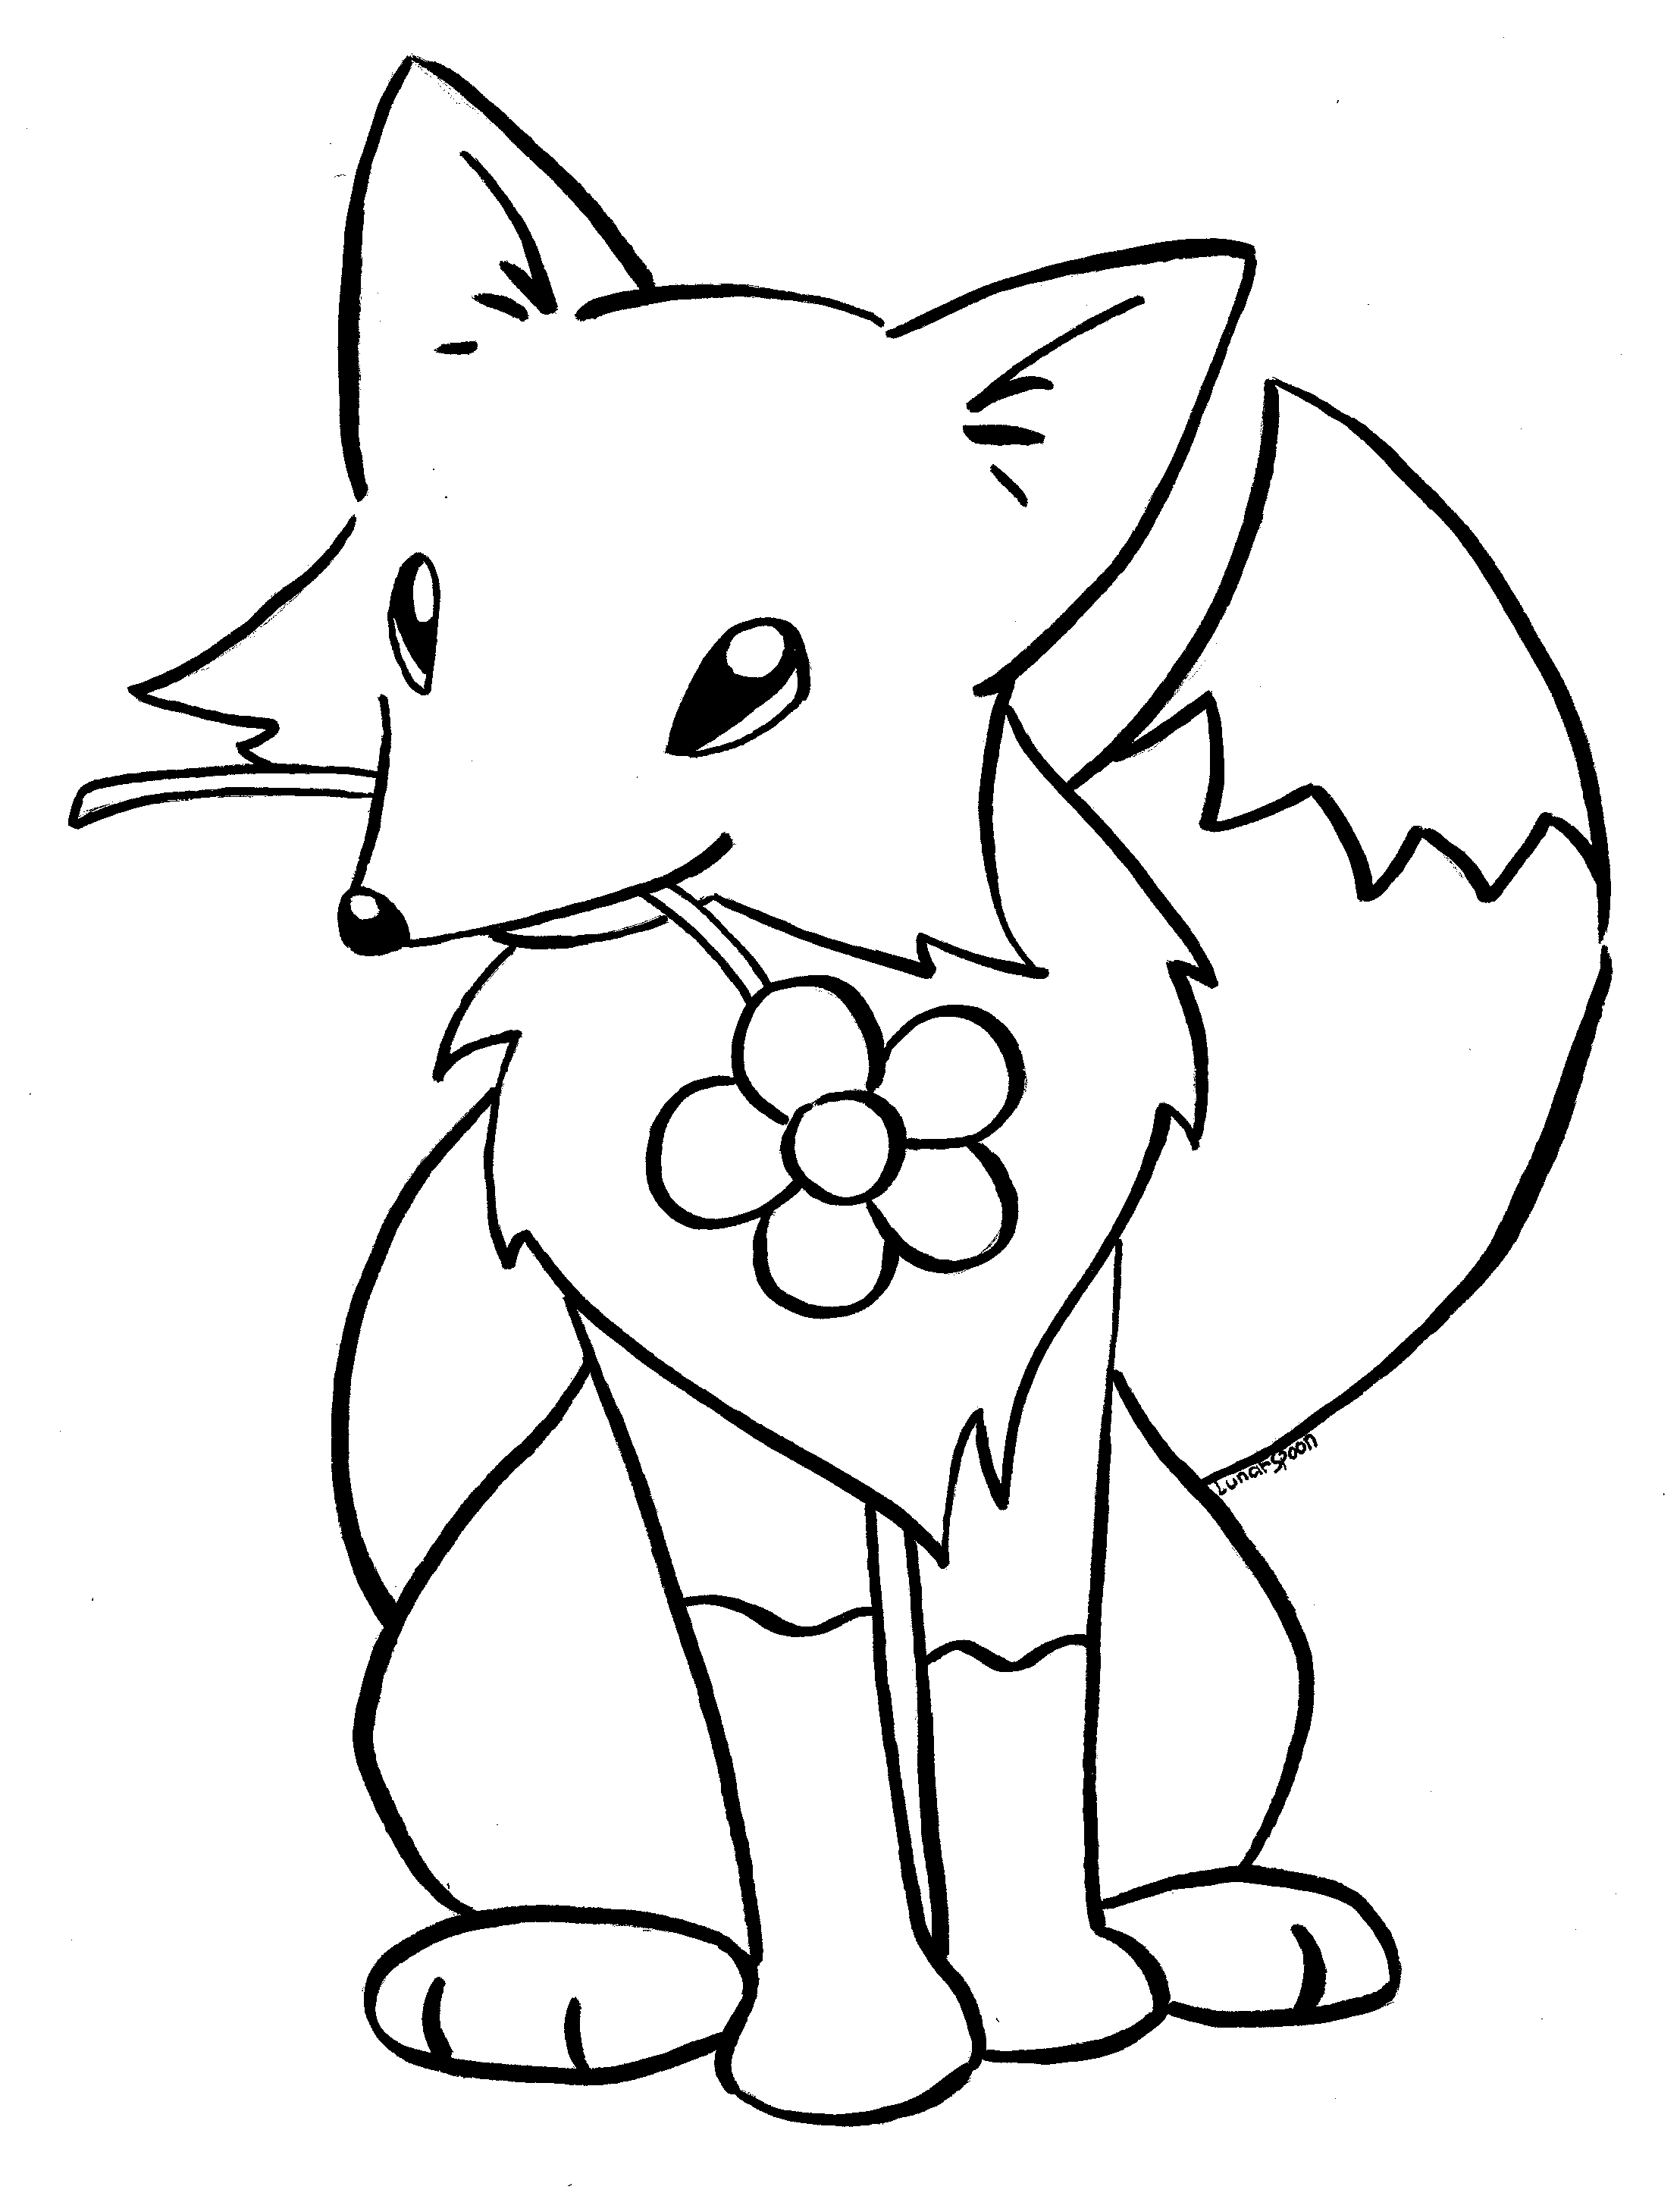 10 Pics Of Dapper Fox Animal Coloring Pages